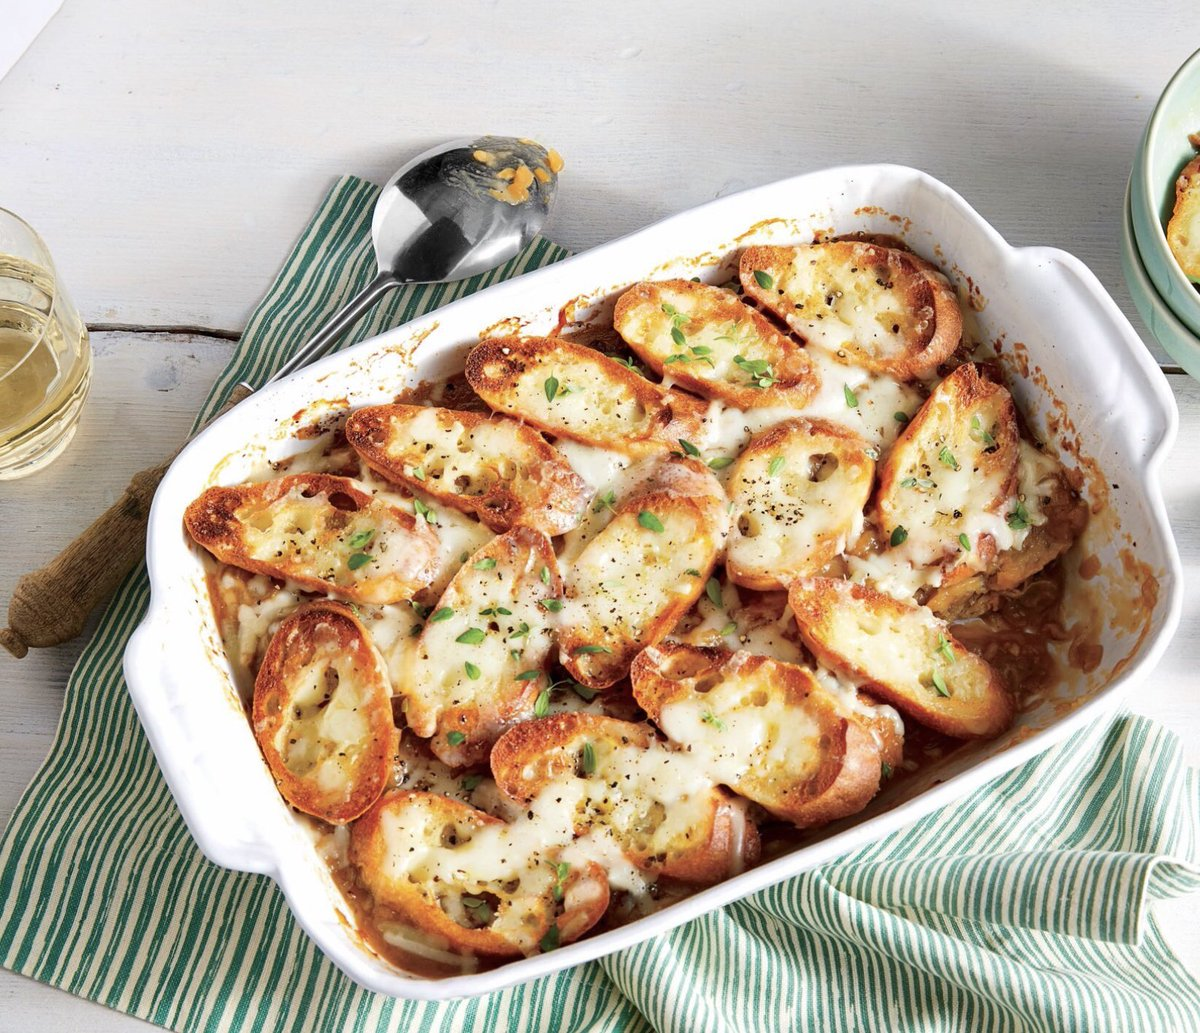 Awesome Easy & Warm Casseroles For Busy Winter Nights! https://www.southernliving.com/whats-for-supper/best-easy-casseroles-for-dinner…  #MaryEllenVanakenTeam #GeorgiaRealEstate #NorthAtlanta  #Alpharetta  #NorthAtlantaLuxury #AlpharettaLivingpic.twitter.com/ZmMqOWyez2